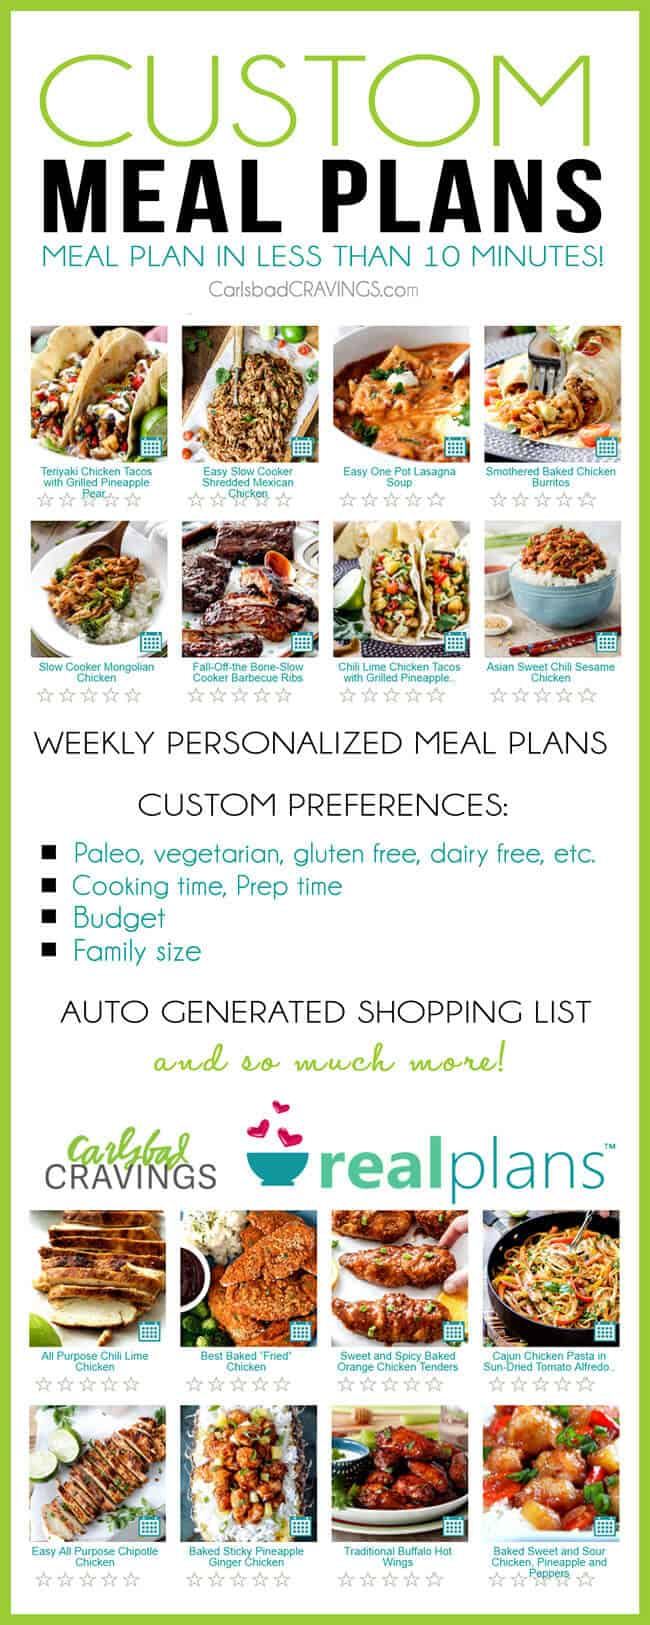 I was blown away by this online meal plan! So easy, customizable and took minutes to plan my family meals for the whole week! My favorite part is the automatically generated shopping list – simply life changing! I especially recommend this is if you are gluten free, dairy free or have any other dietary restrictions.